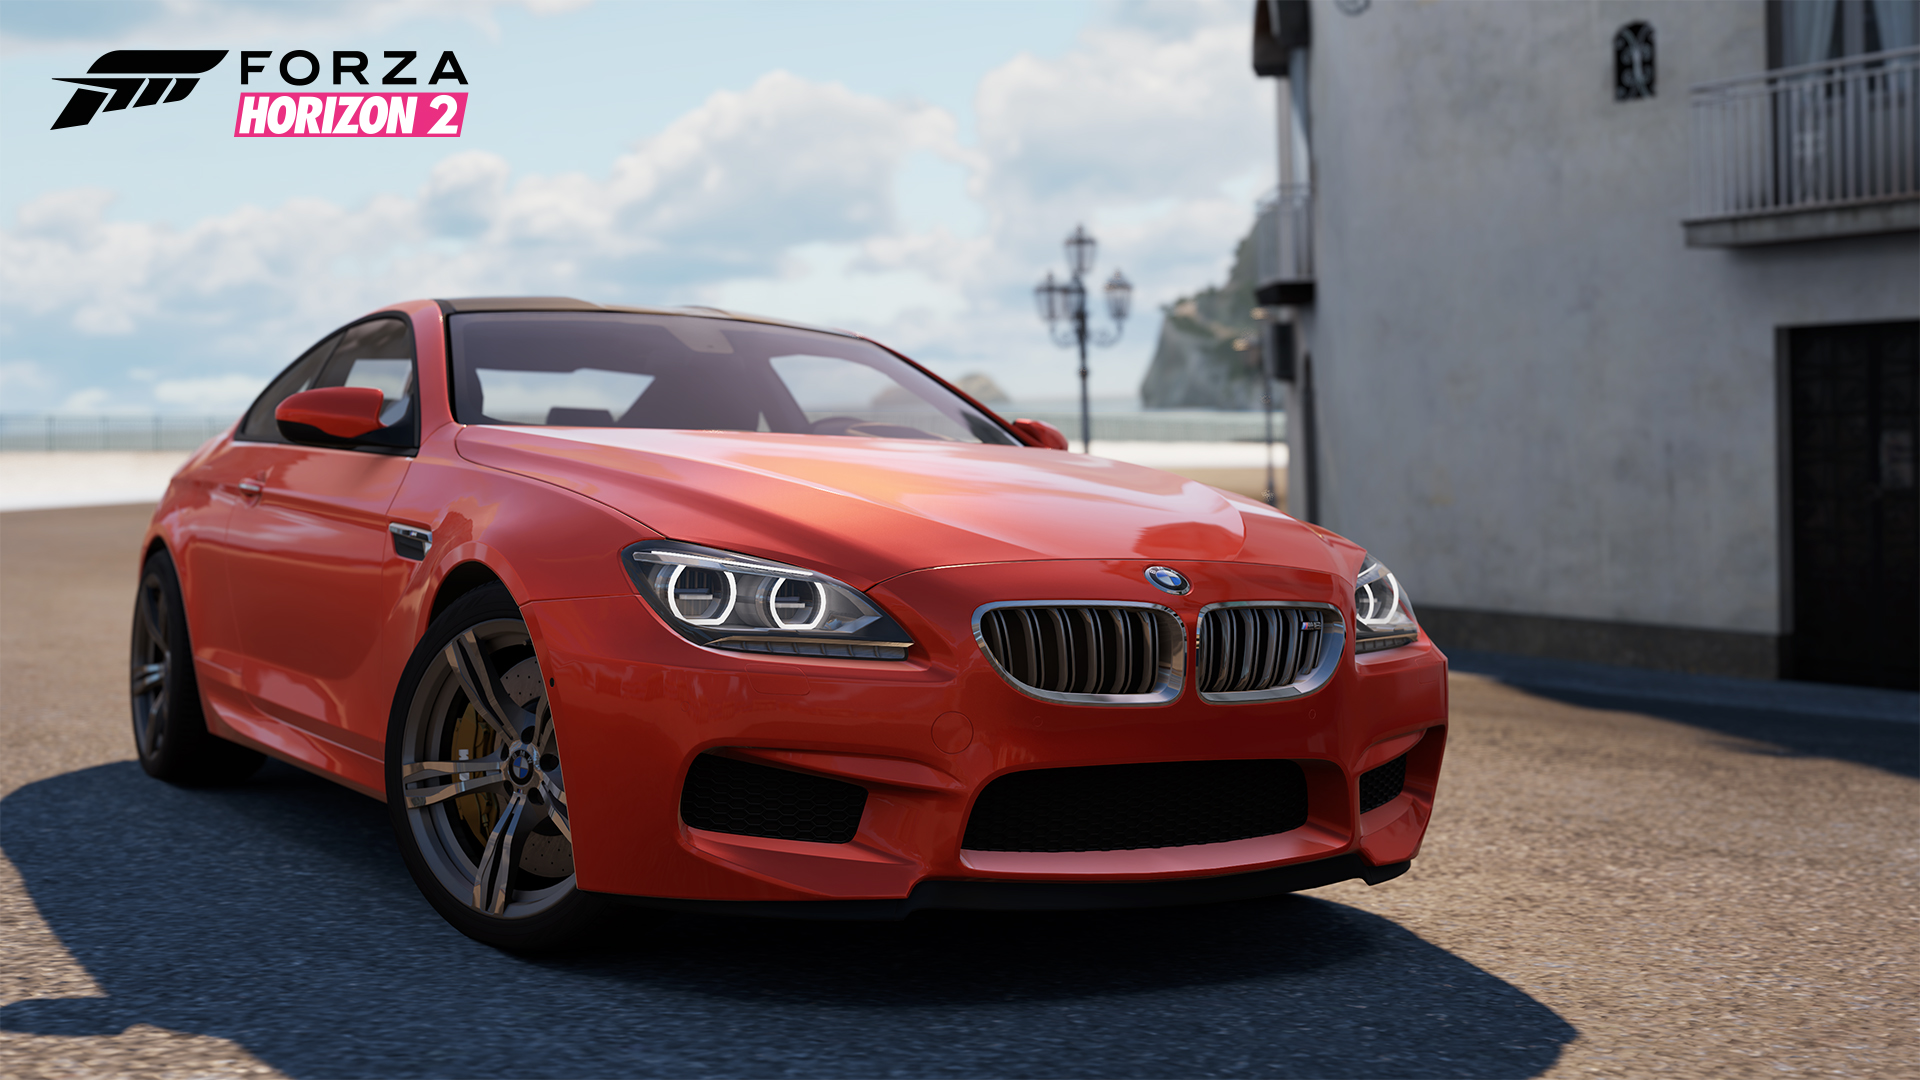 Forza Horizon 2 Pre-Order Car Pack Available Now on Xbox One